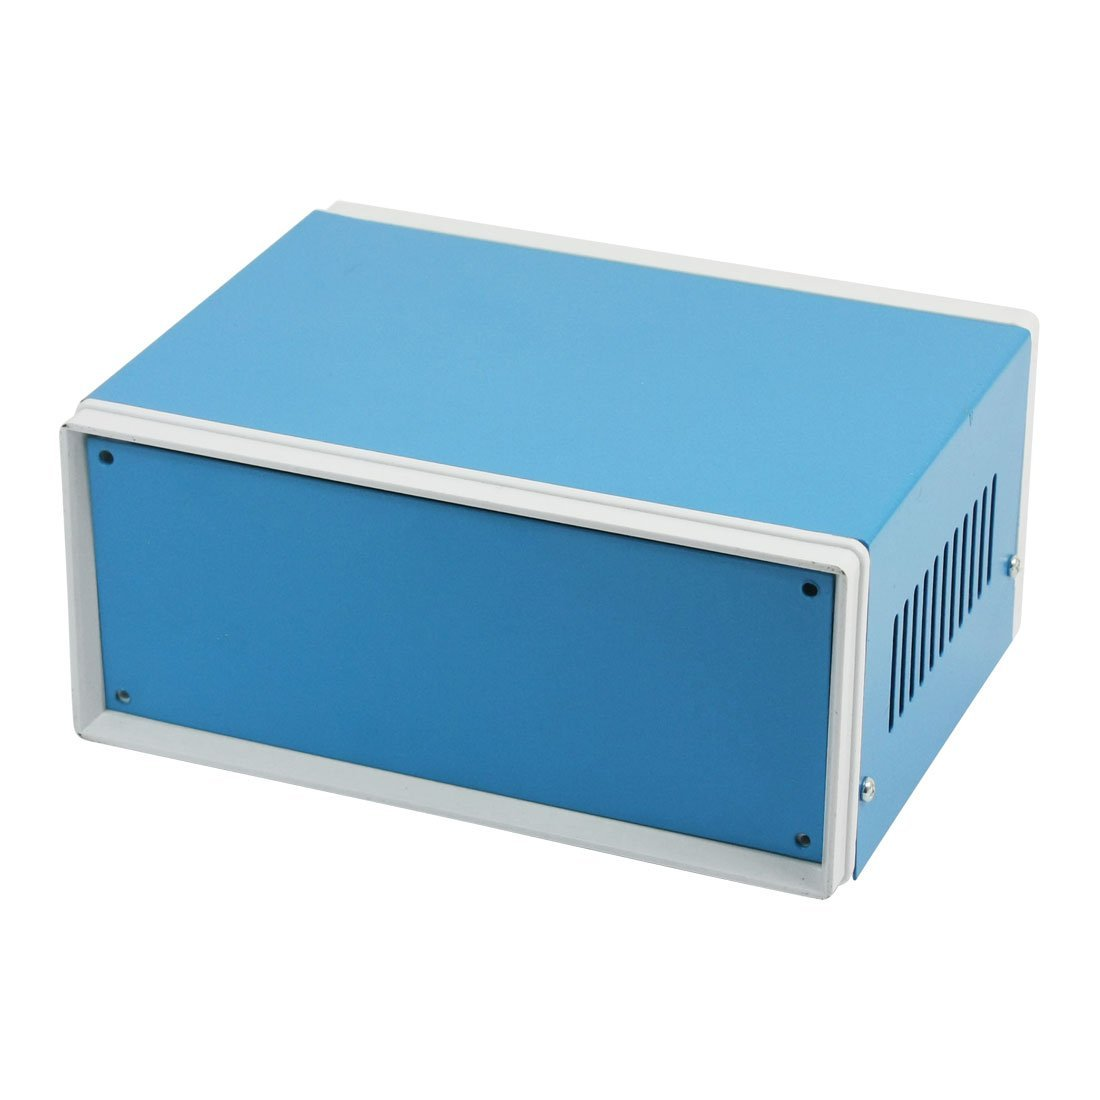 6.7 x 5.1 x 3.1 Blue Metal Enclosure Project Case DIY Junction Box6.7 x 5.1 x 3.1 Blue Metal Enclosure Project Case DIY Junction Box